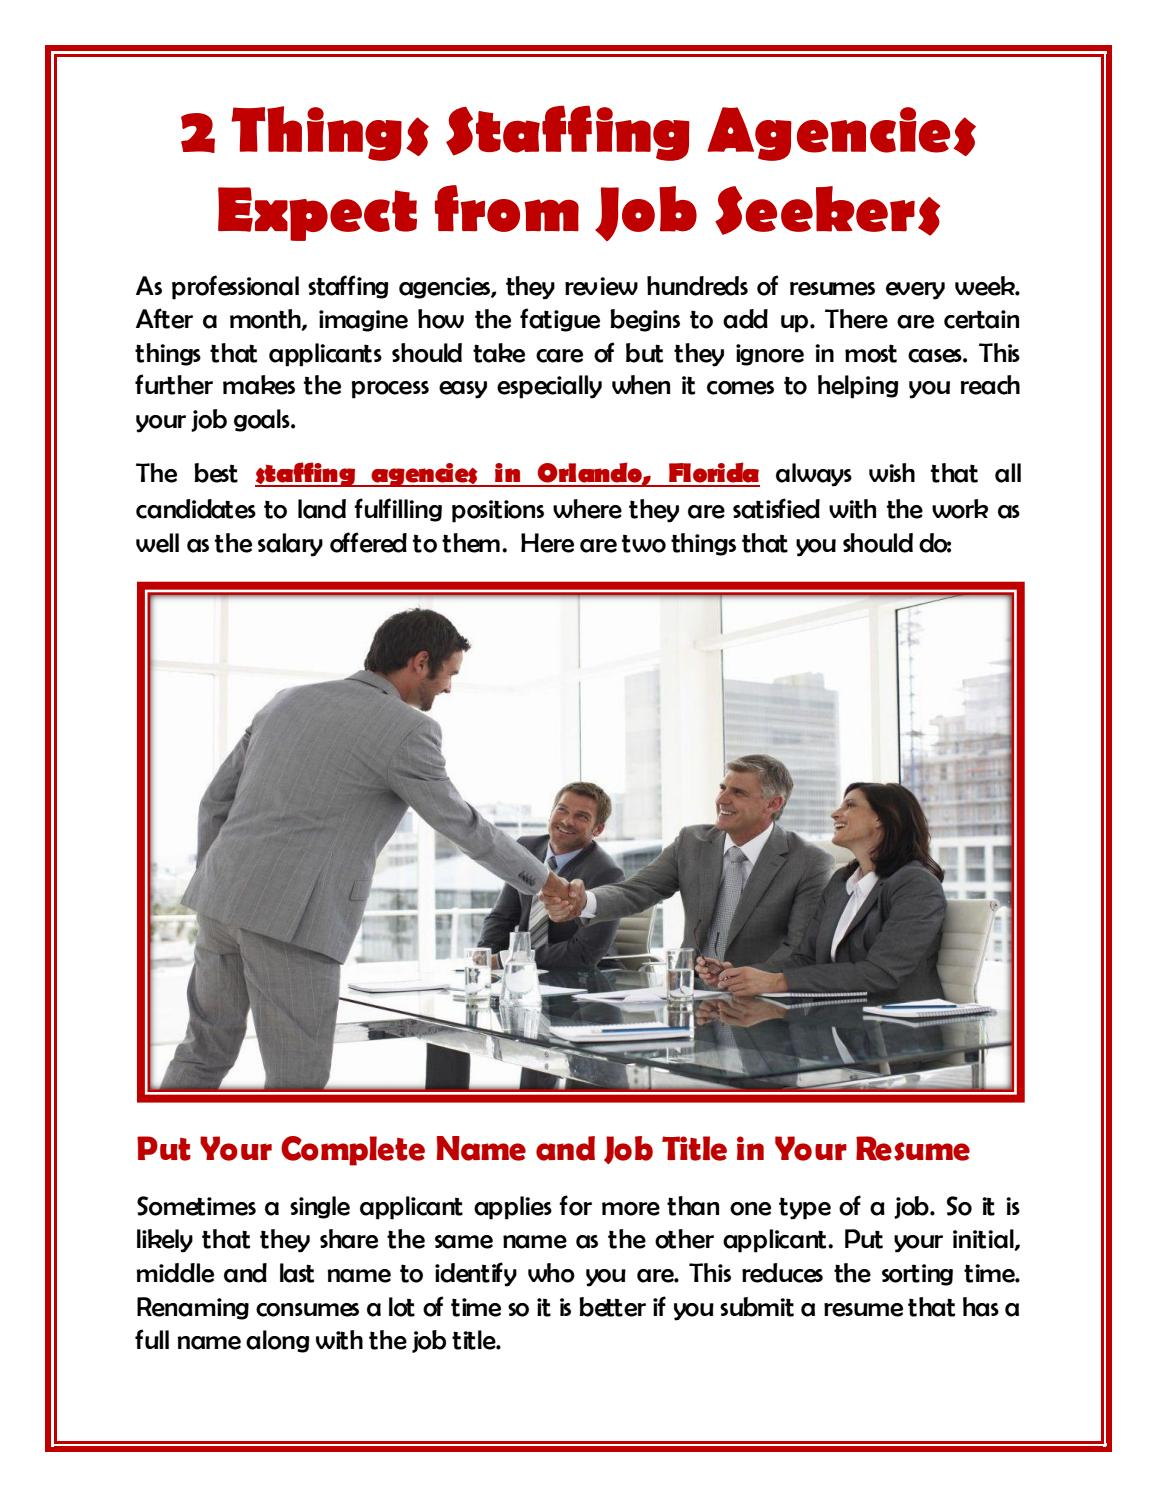 2 Things Staffing Agencies Expect from Job Seekers by Moten Tate Inc ...